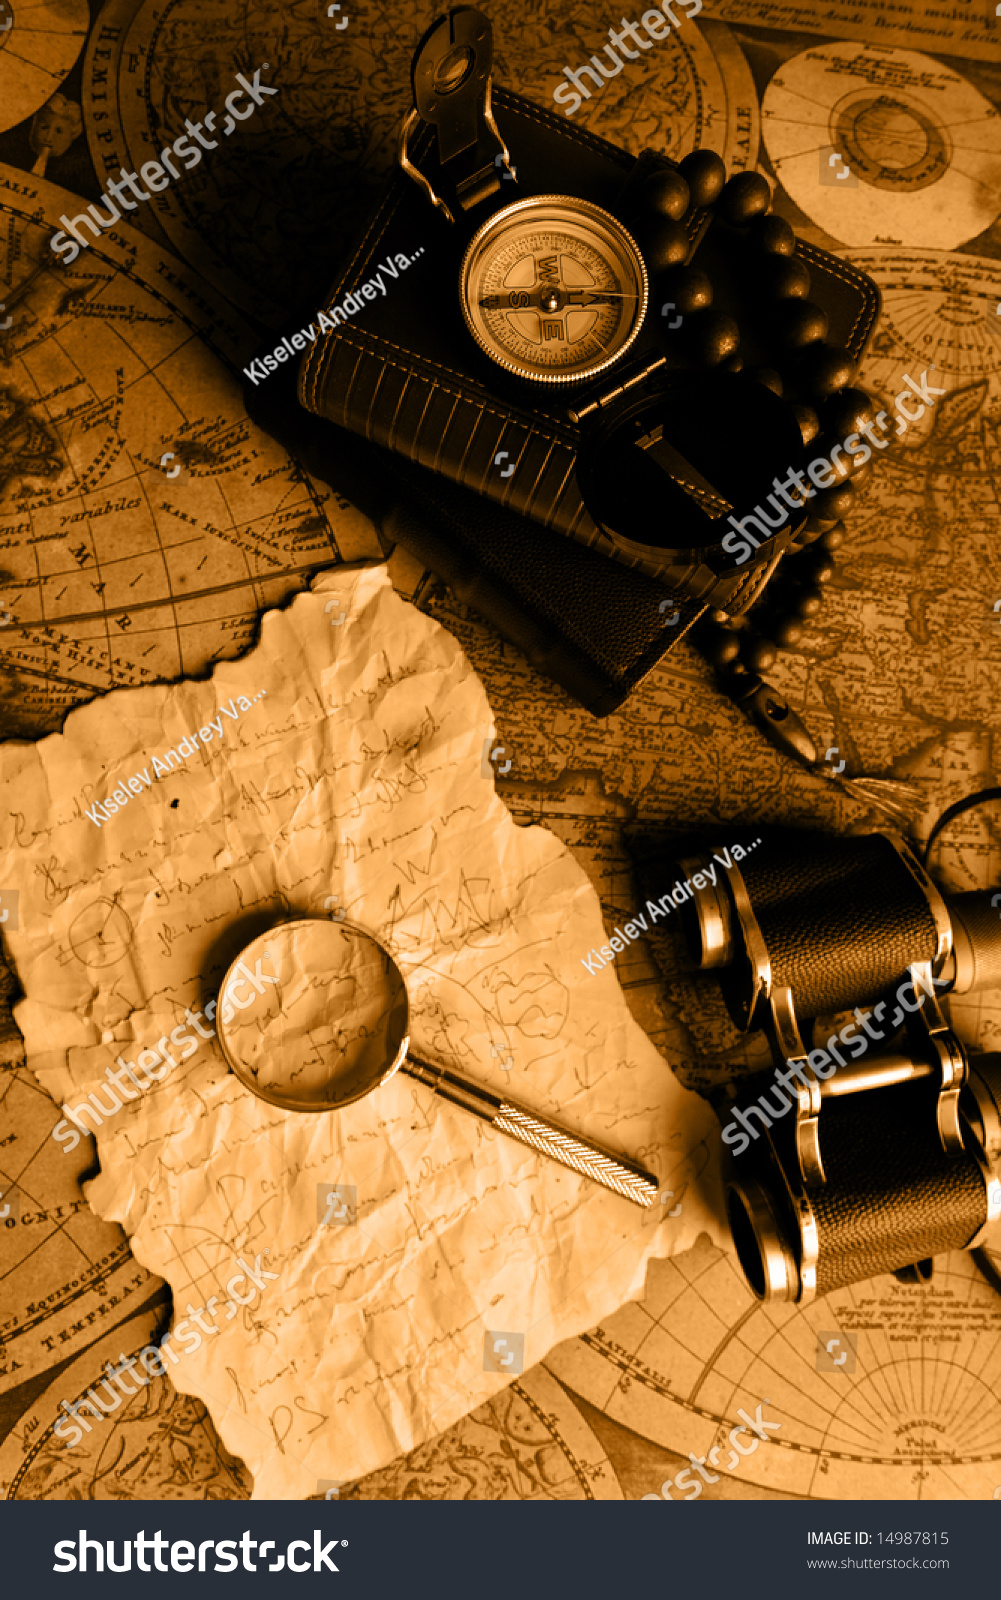 Old fashioned objects on the vintage map stock photo for Old objects